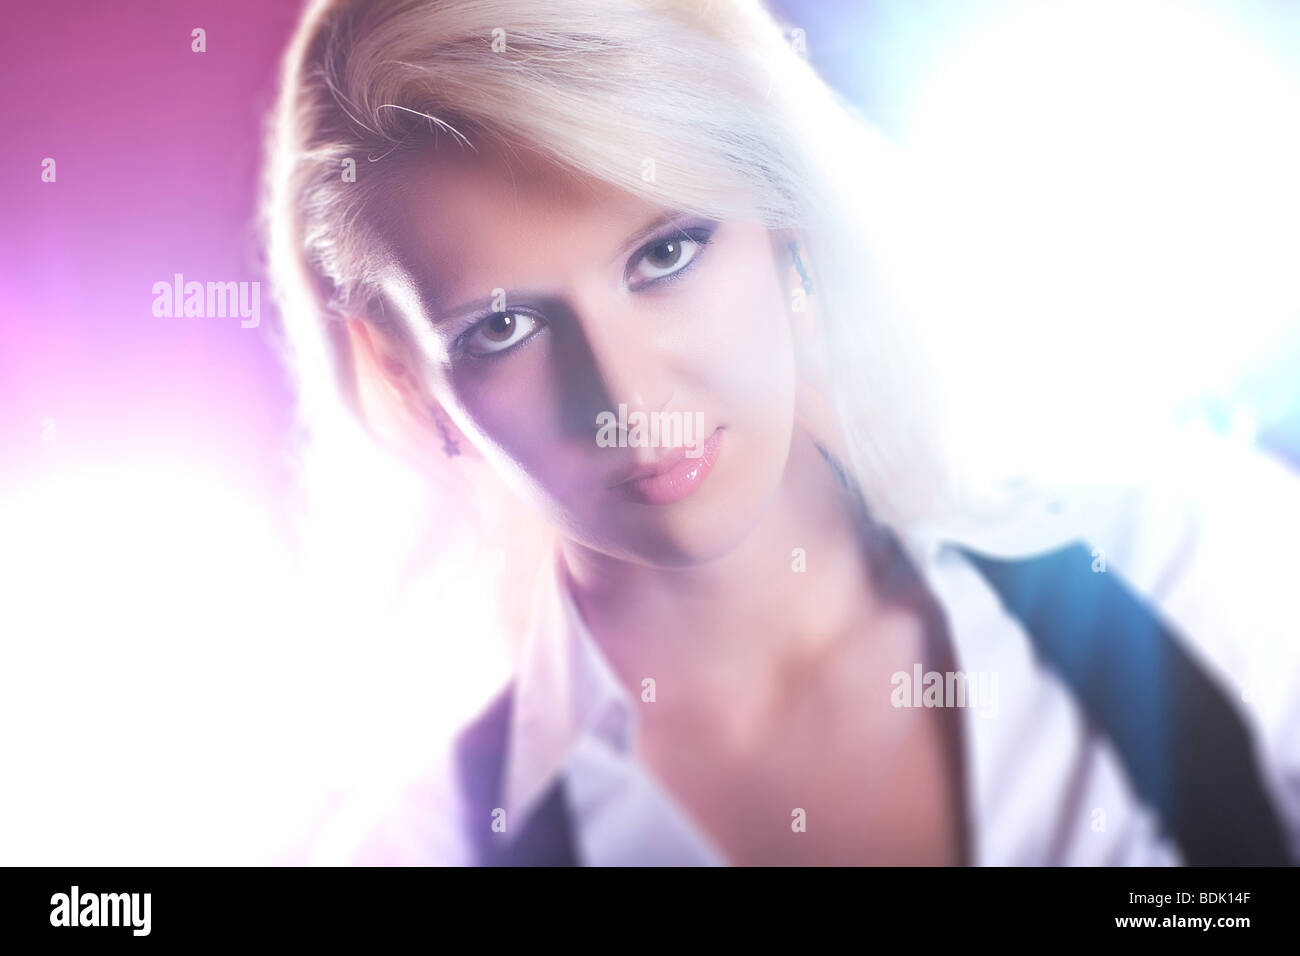 Young woman portrait with bright flashes. - Stock Image